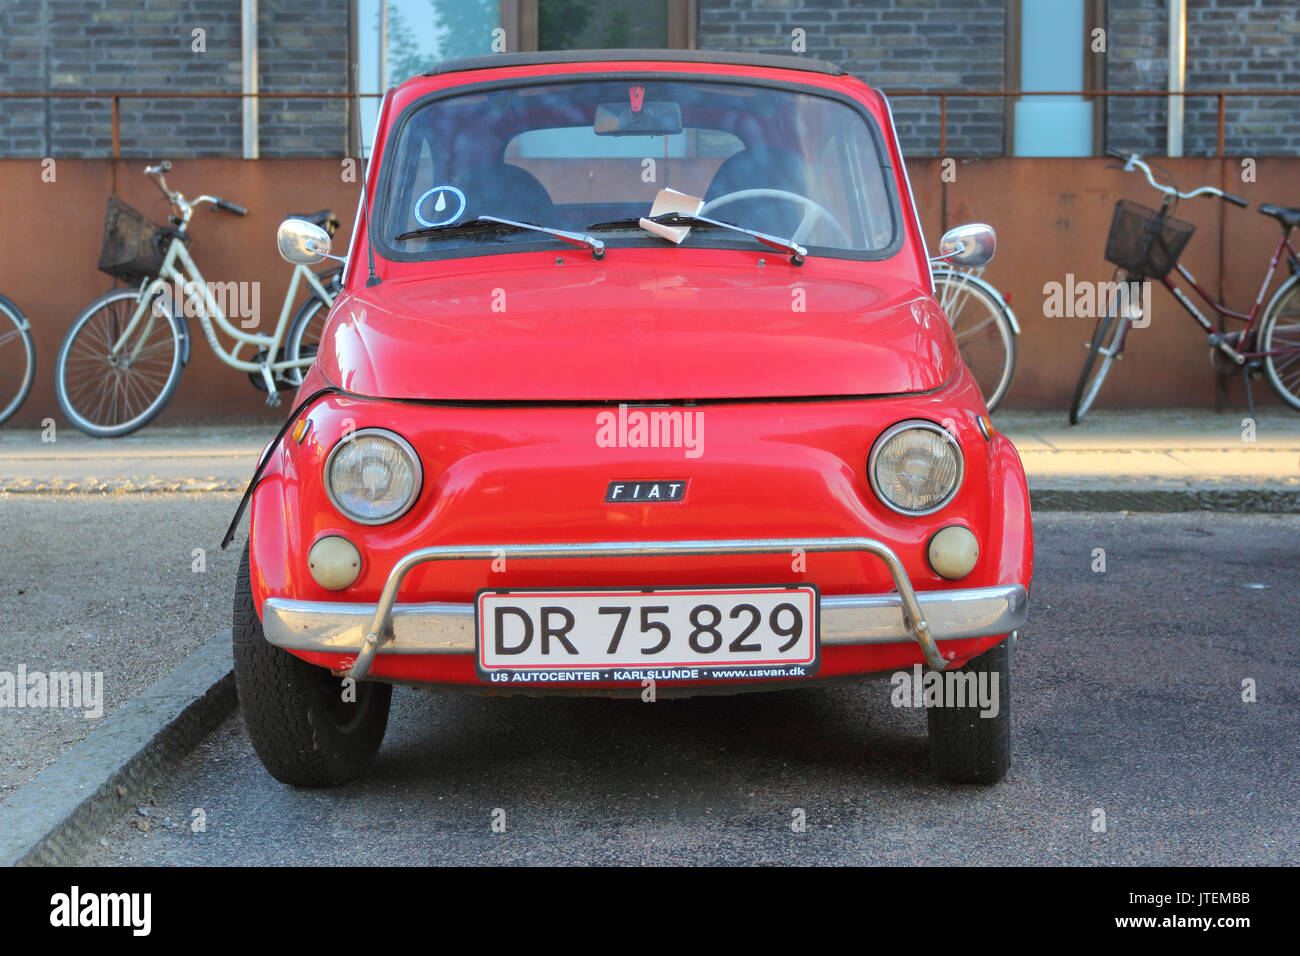 old red fiat stock photos old red fiat stock images alamy. Black Bedroom Furniture Sets. Home Design Ideas